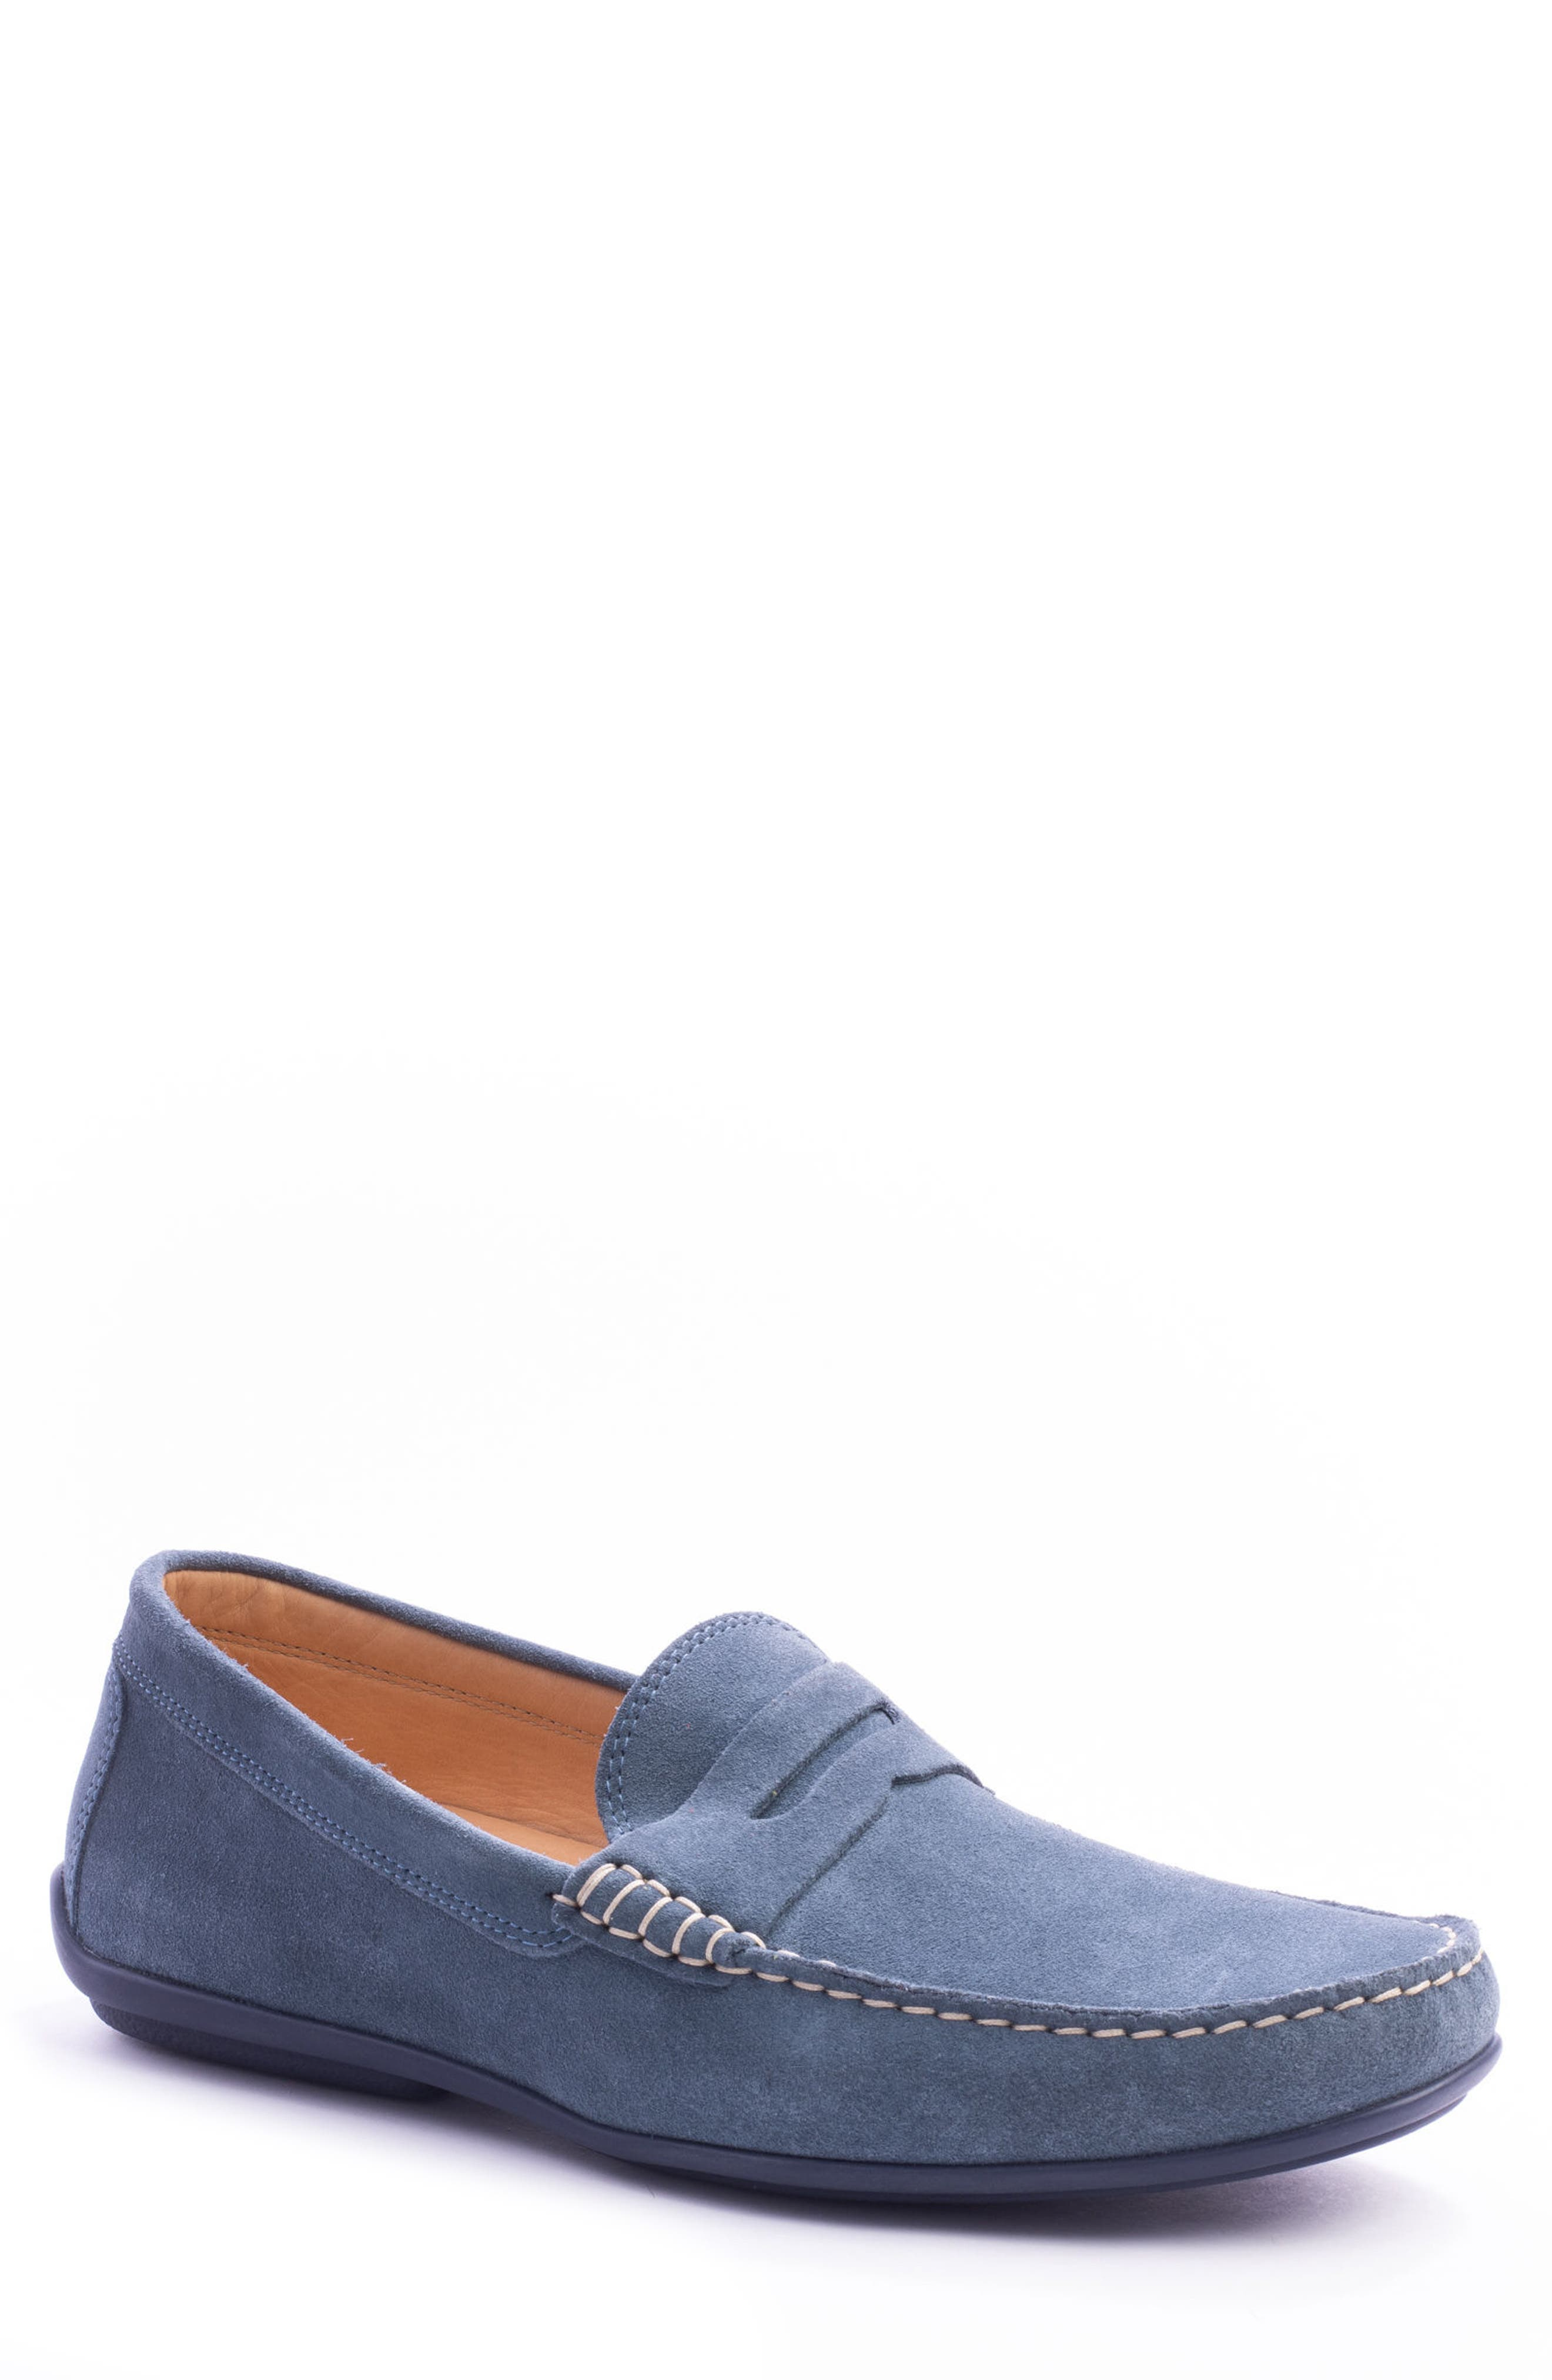 'Parkers' Penny Loafer,                         Main,                         color, Indigo